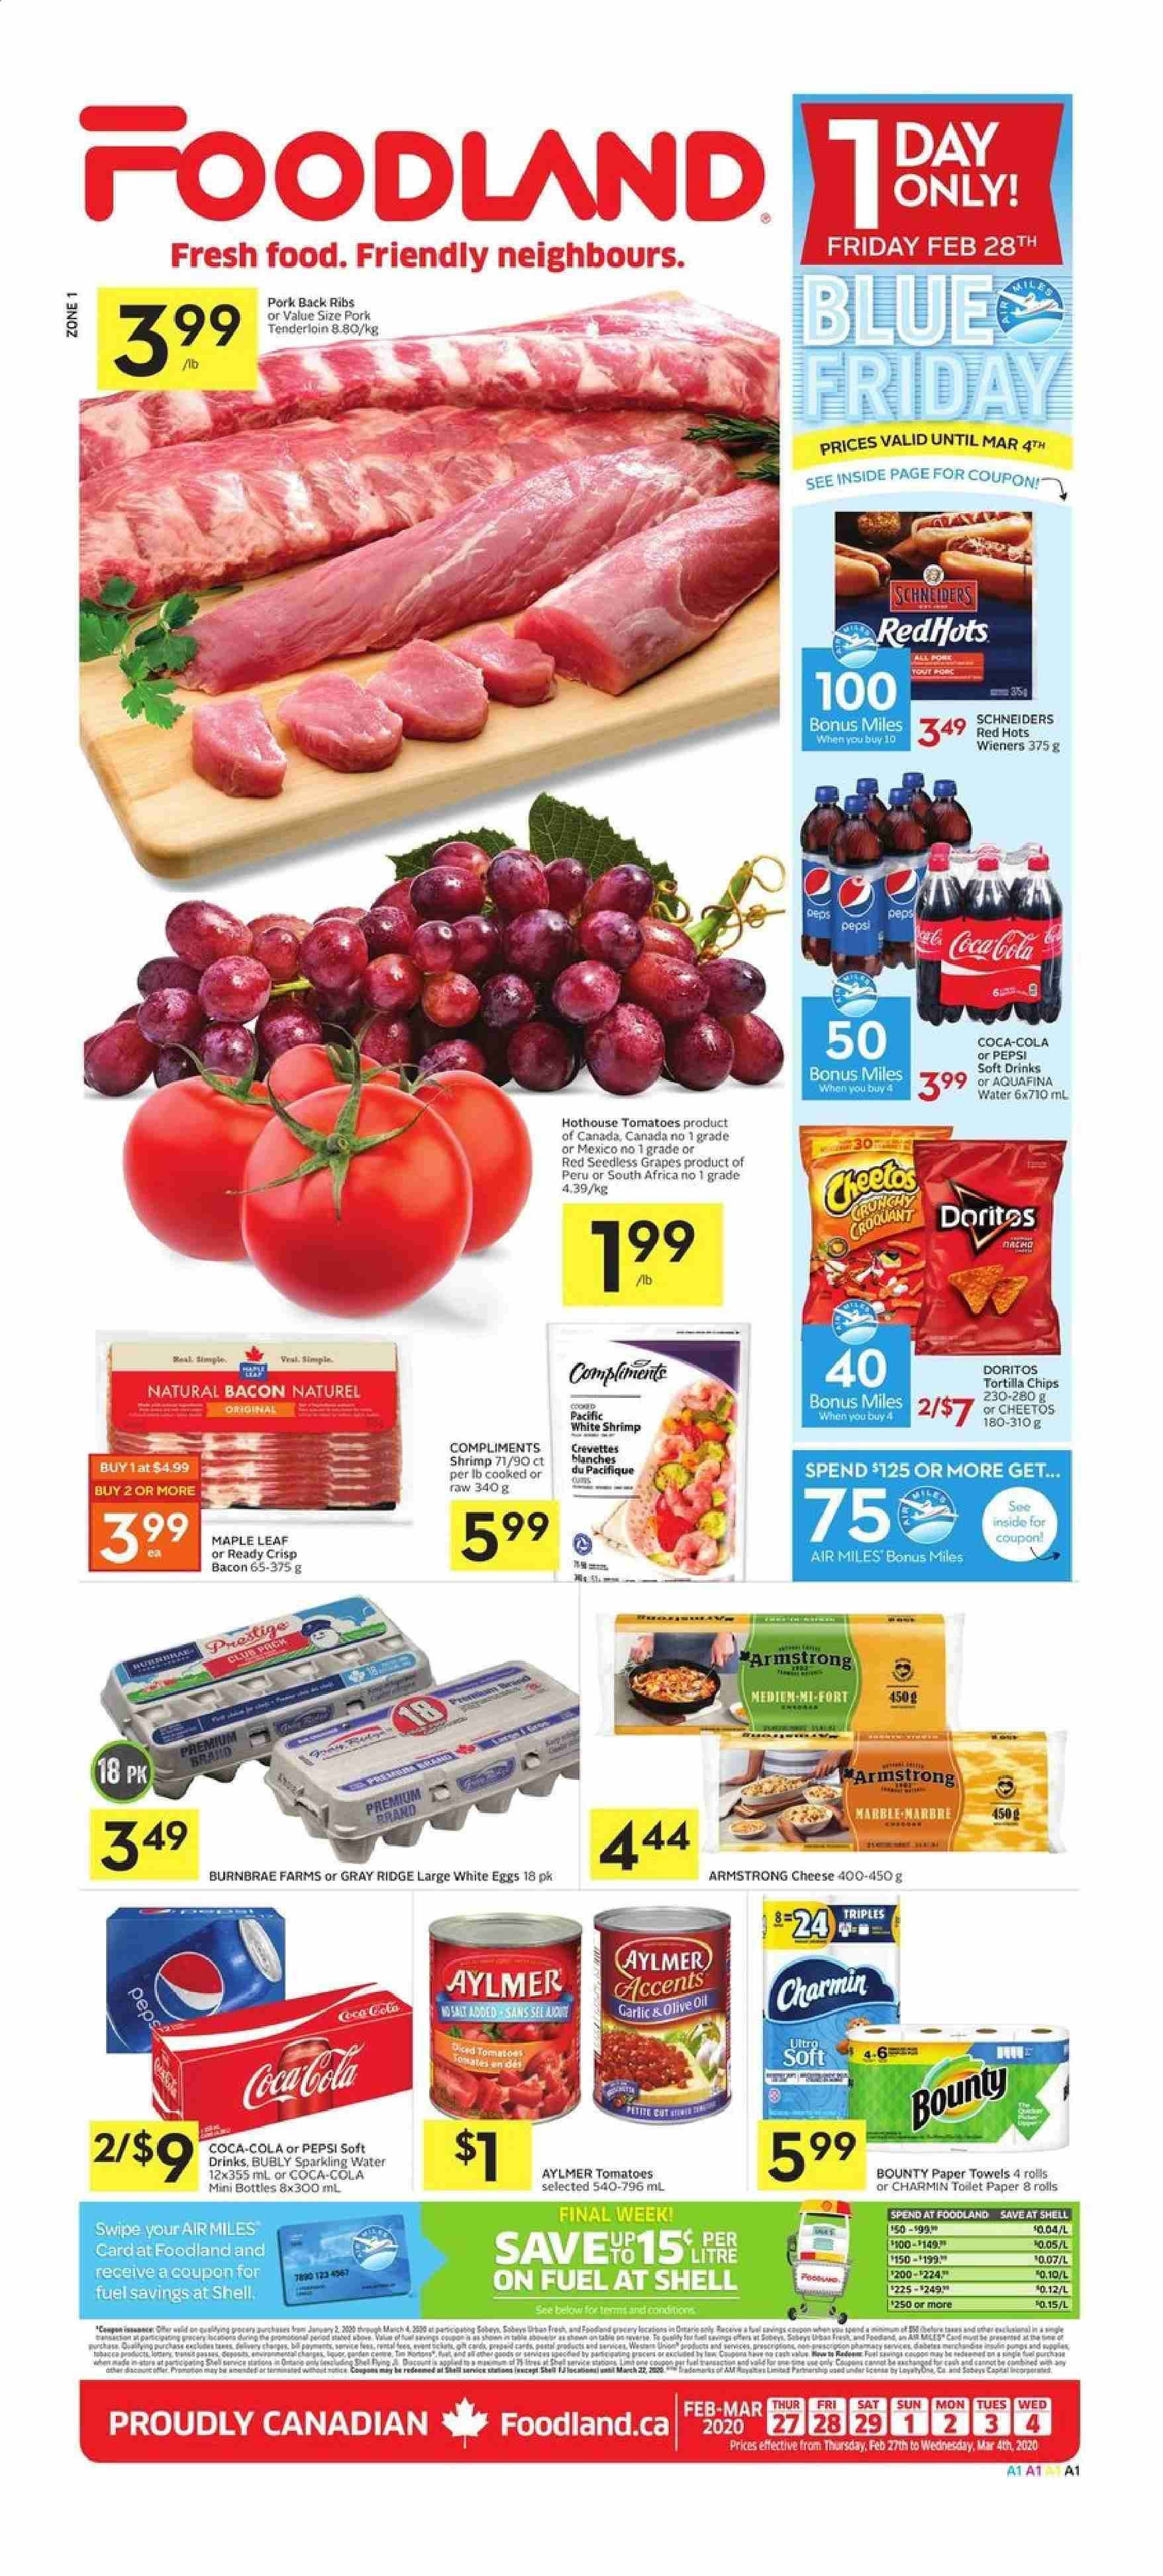 Foodland Flyer  - February 27, 2020 - March 04, 2020. Page 1.